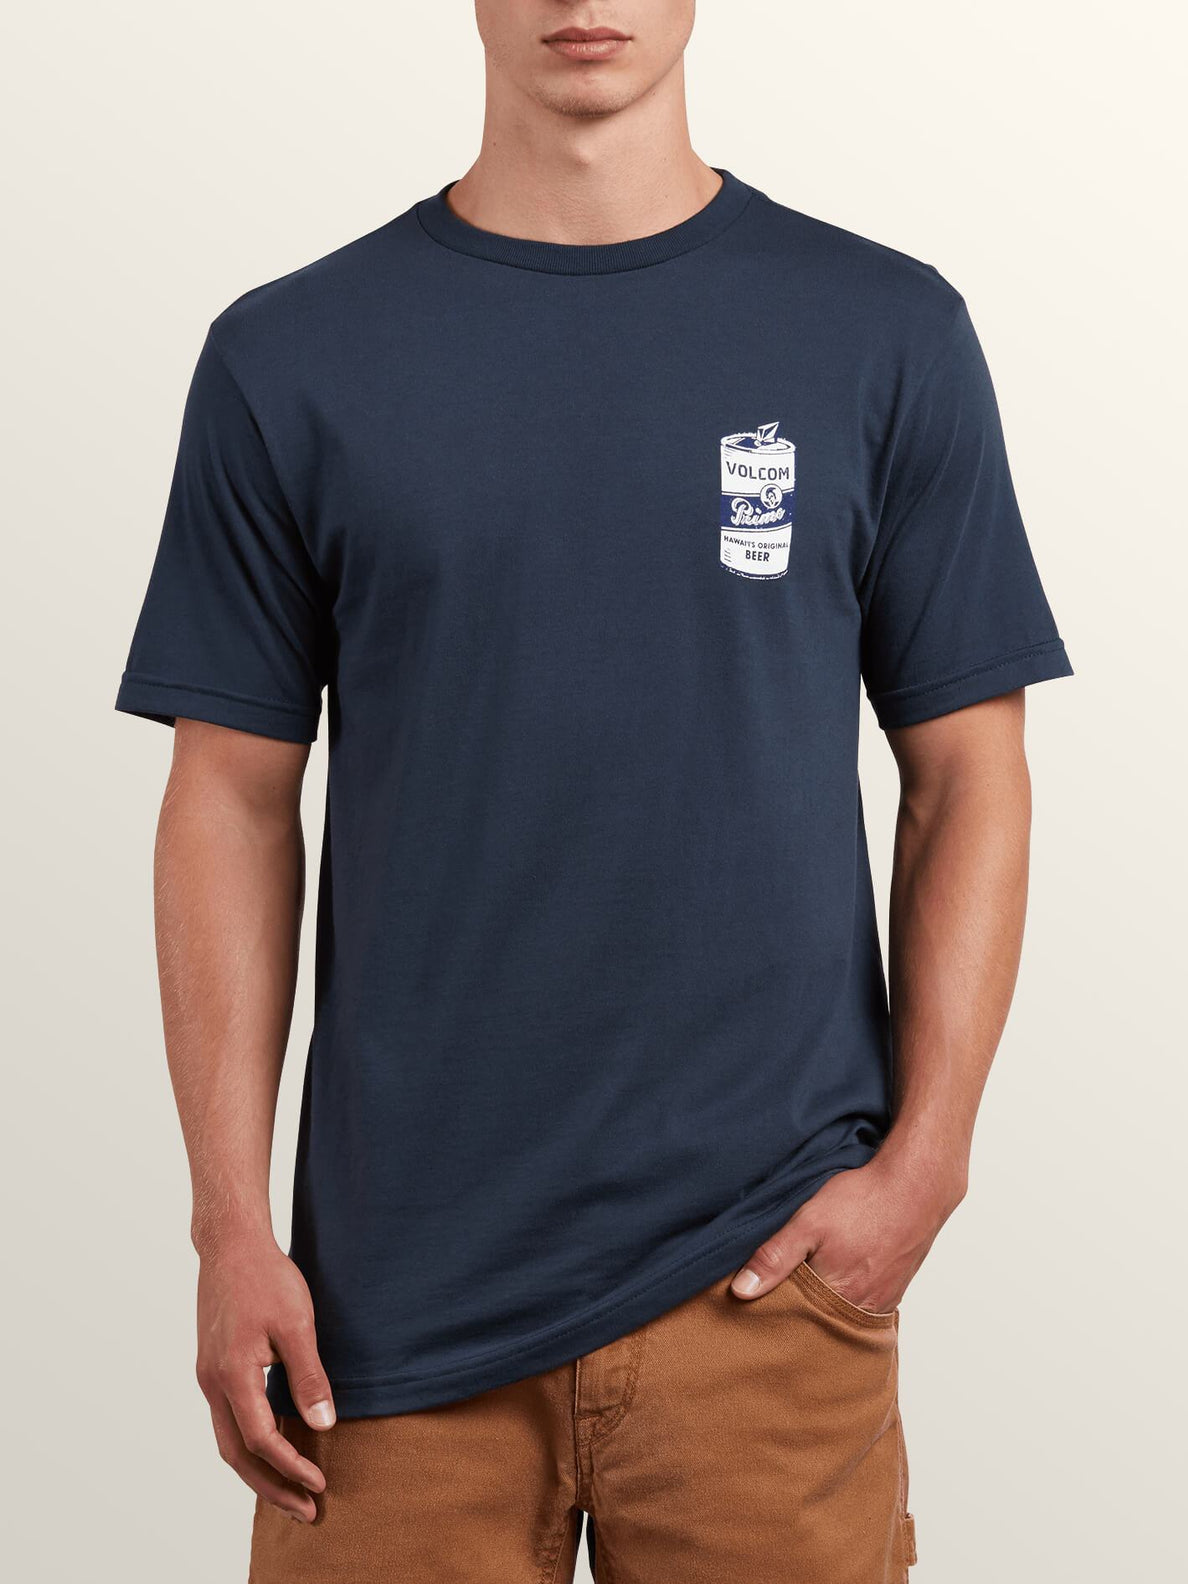 Primo Chug Short Sleeve Tee In Navy, Front View